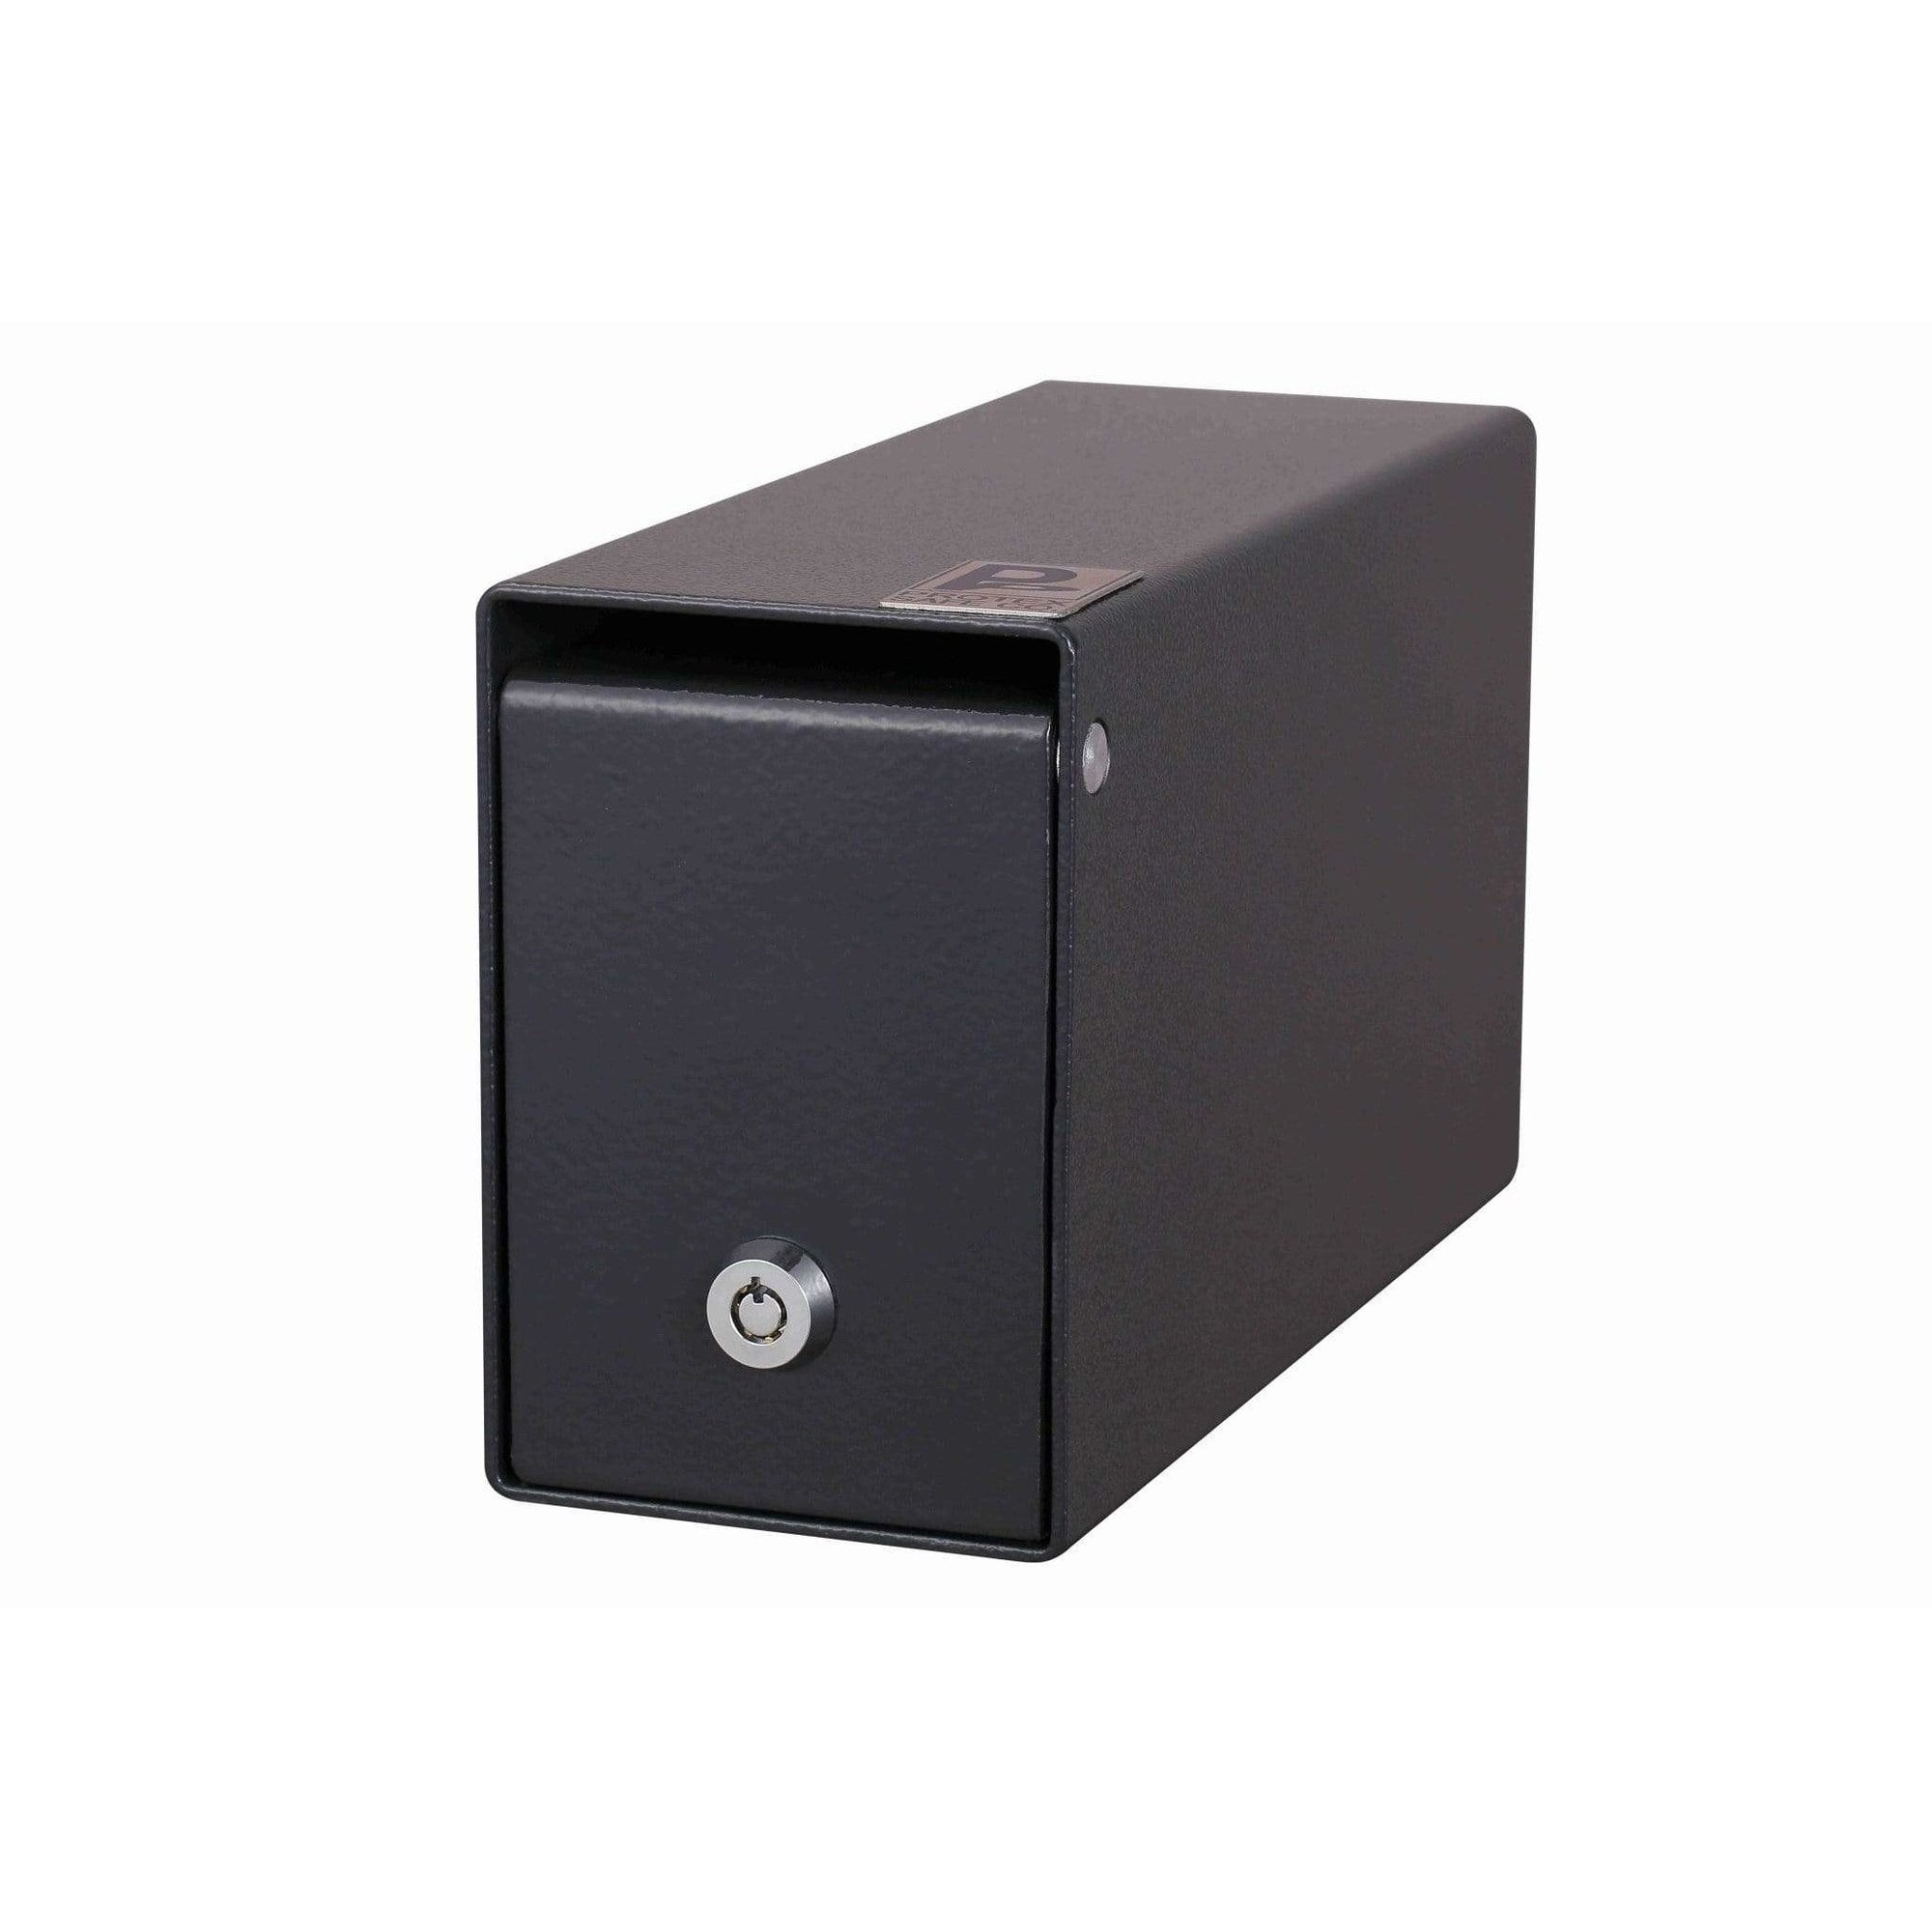 Protex Safes Drop Safe Protex SDB-100 Drop Safe - Black SDB-100 Black